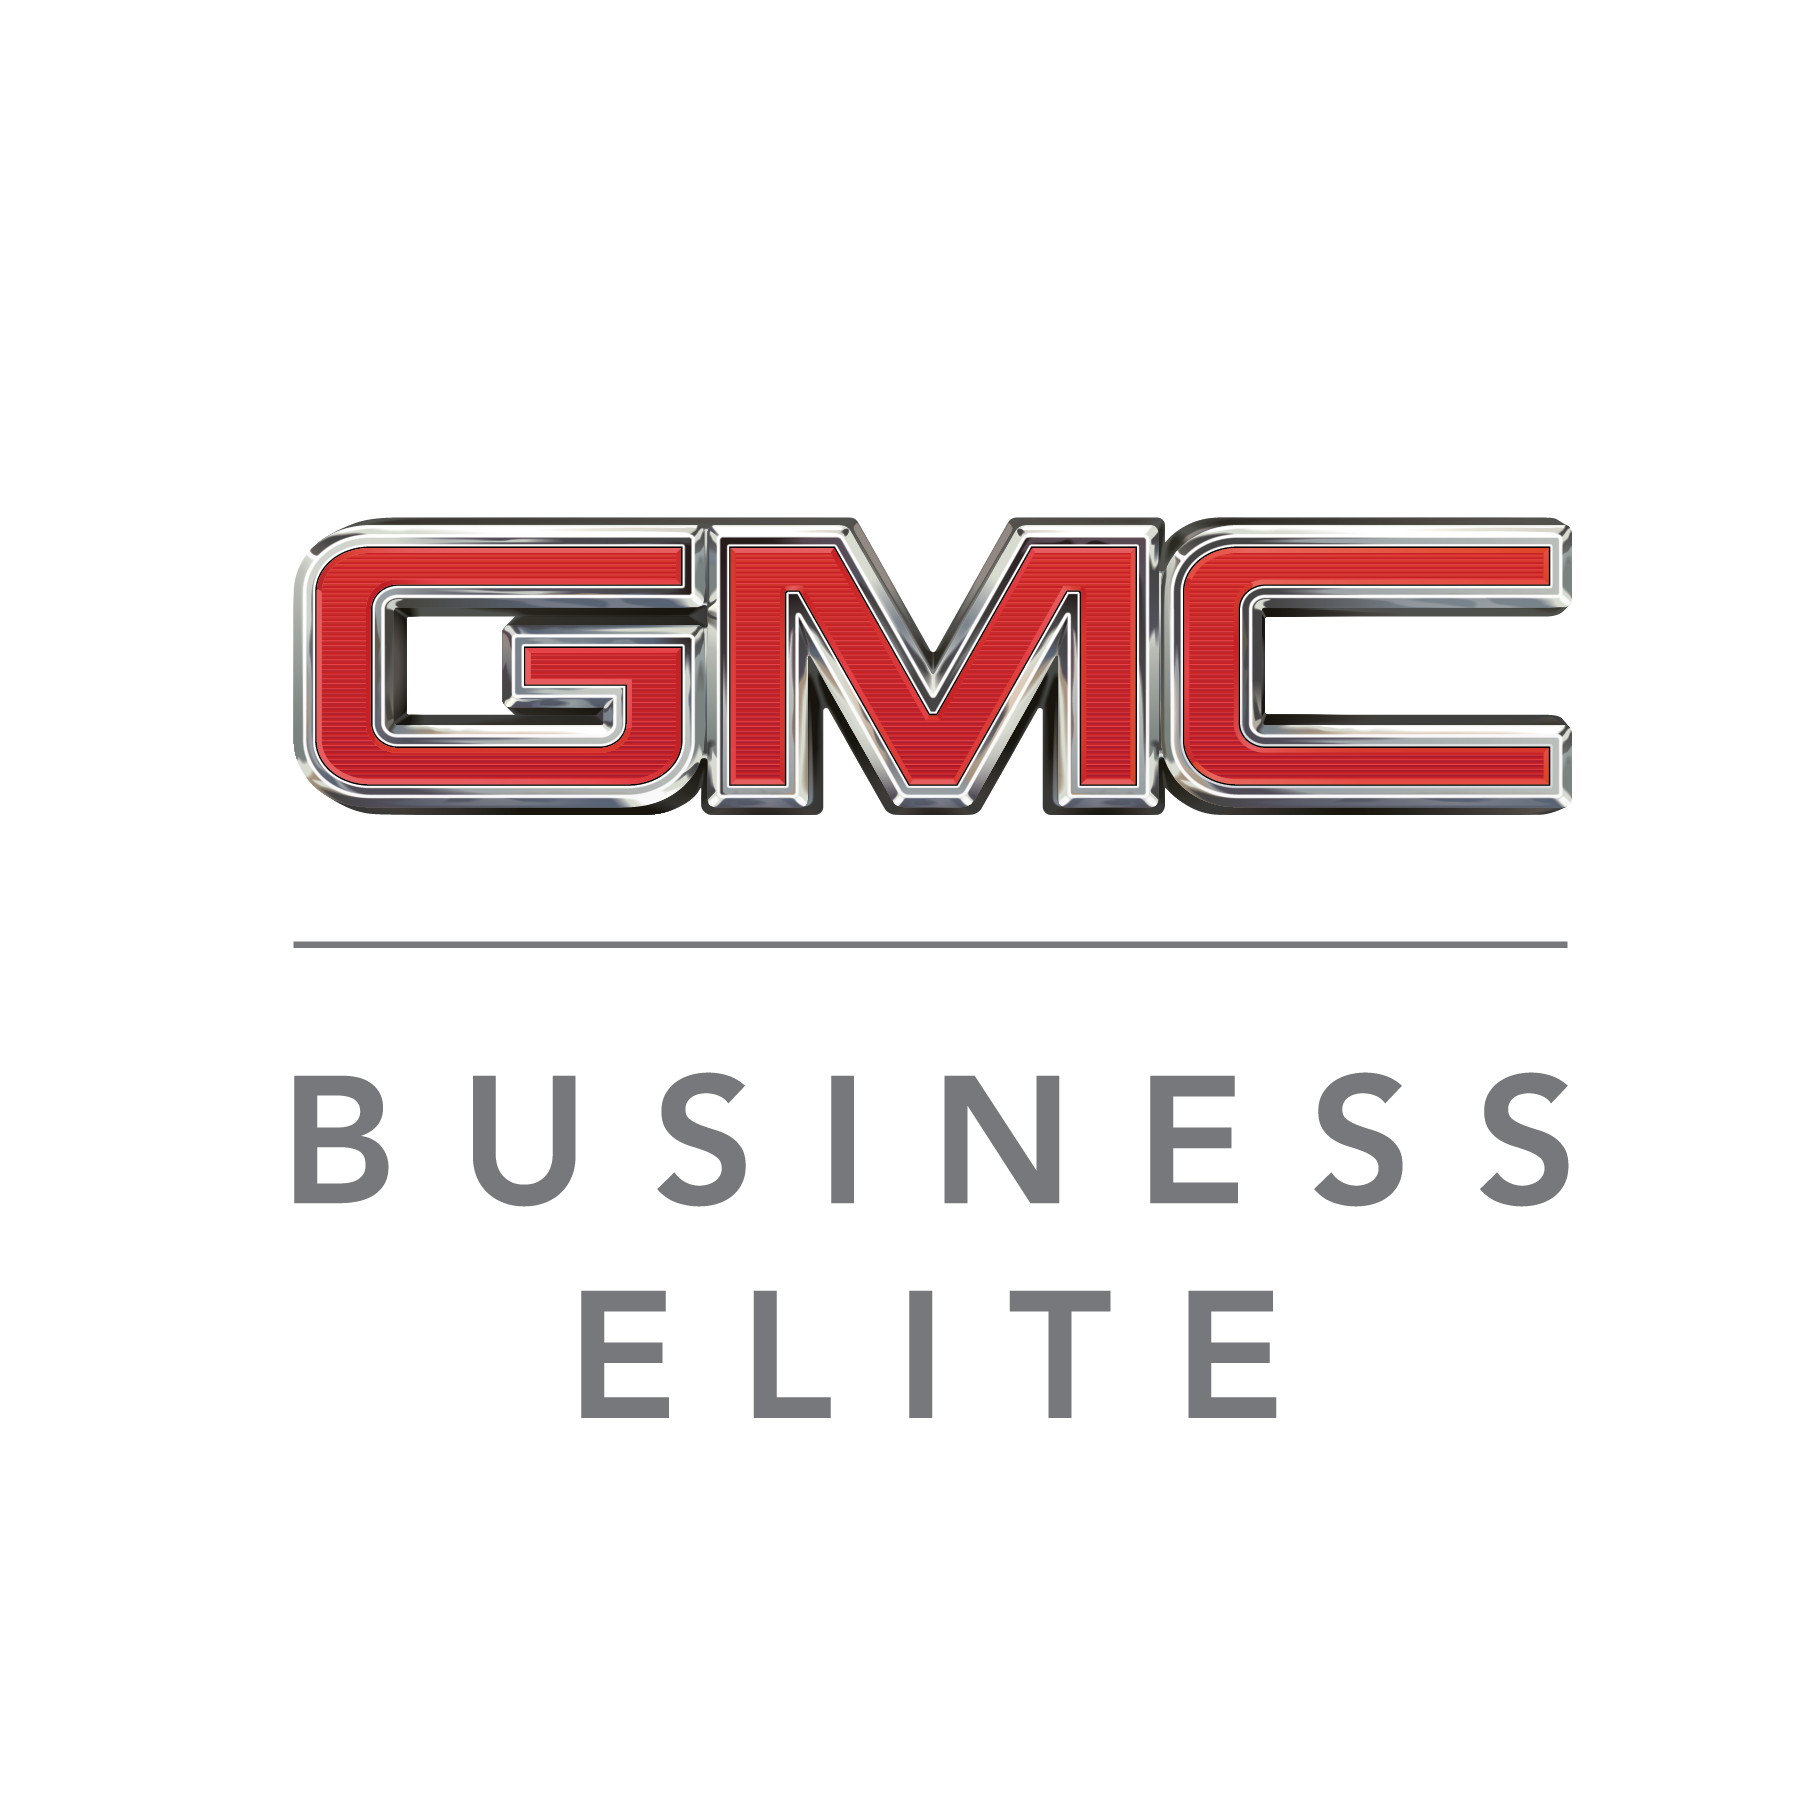 Mcdonald Chevrolet Buick Gmc In Taber: Griffin Motor Company In